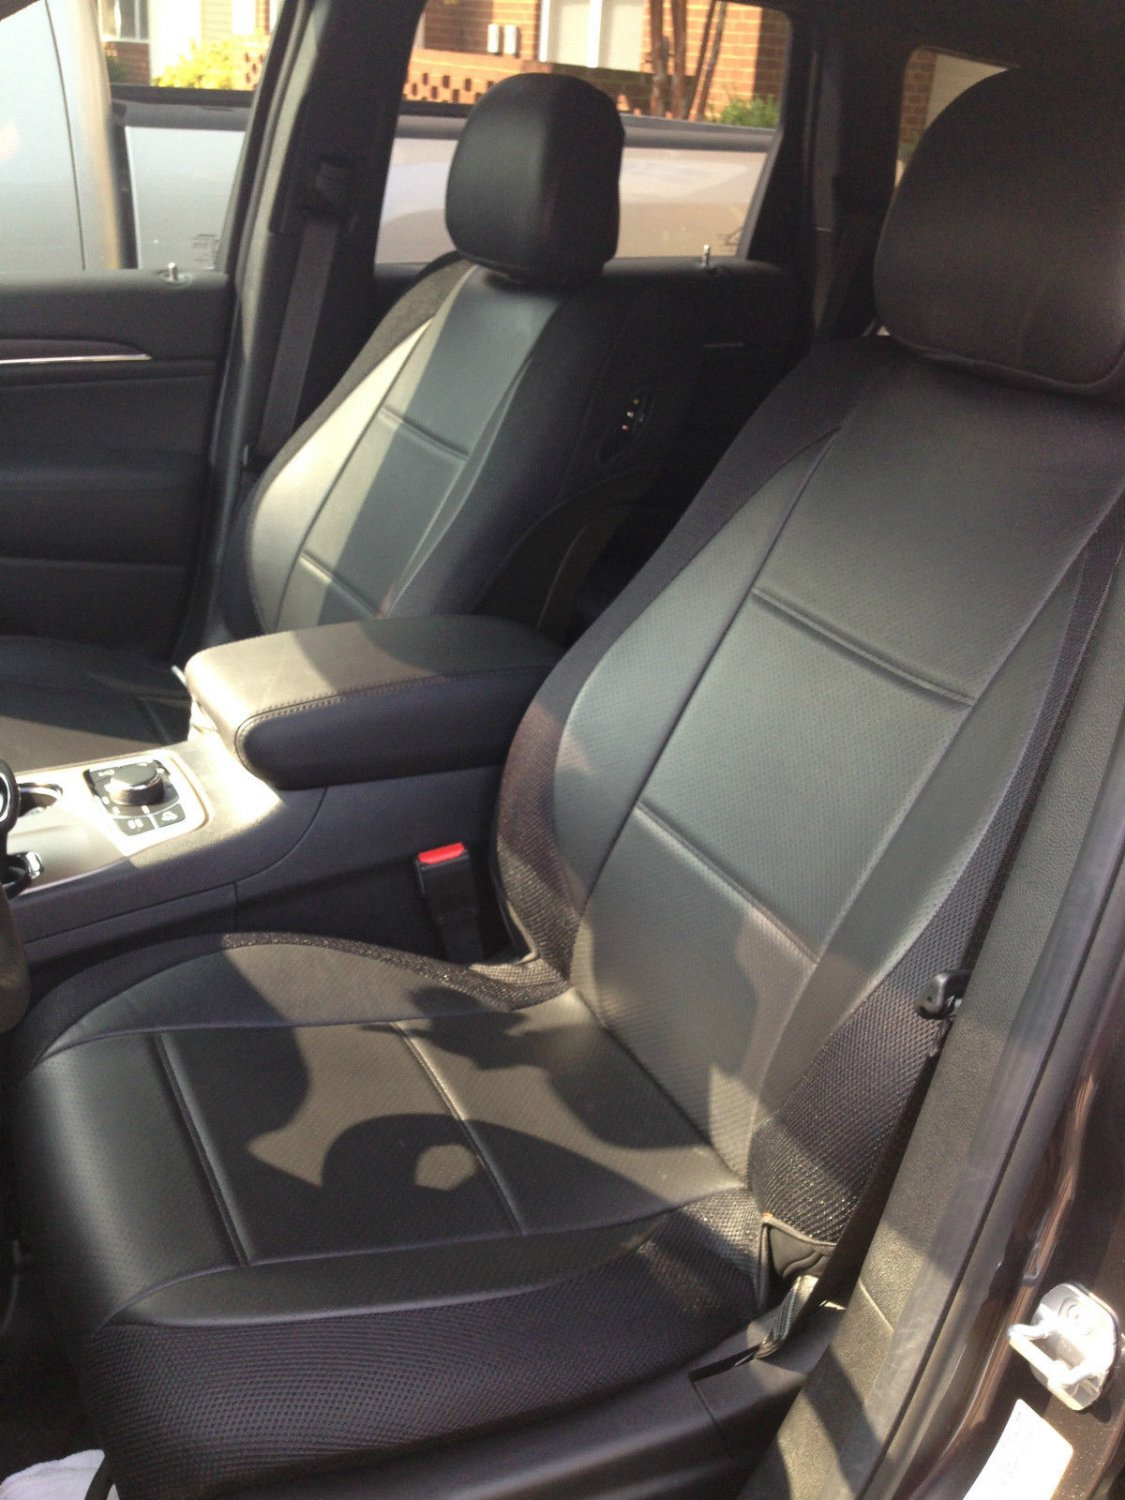 mix leatherette synthetic two front black car seat covers fits volvo luxury suv xc90 2007 2014. Black Bedroom Furniture Sets. Home Design Ideas